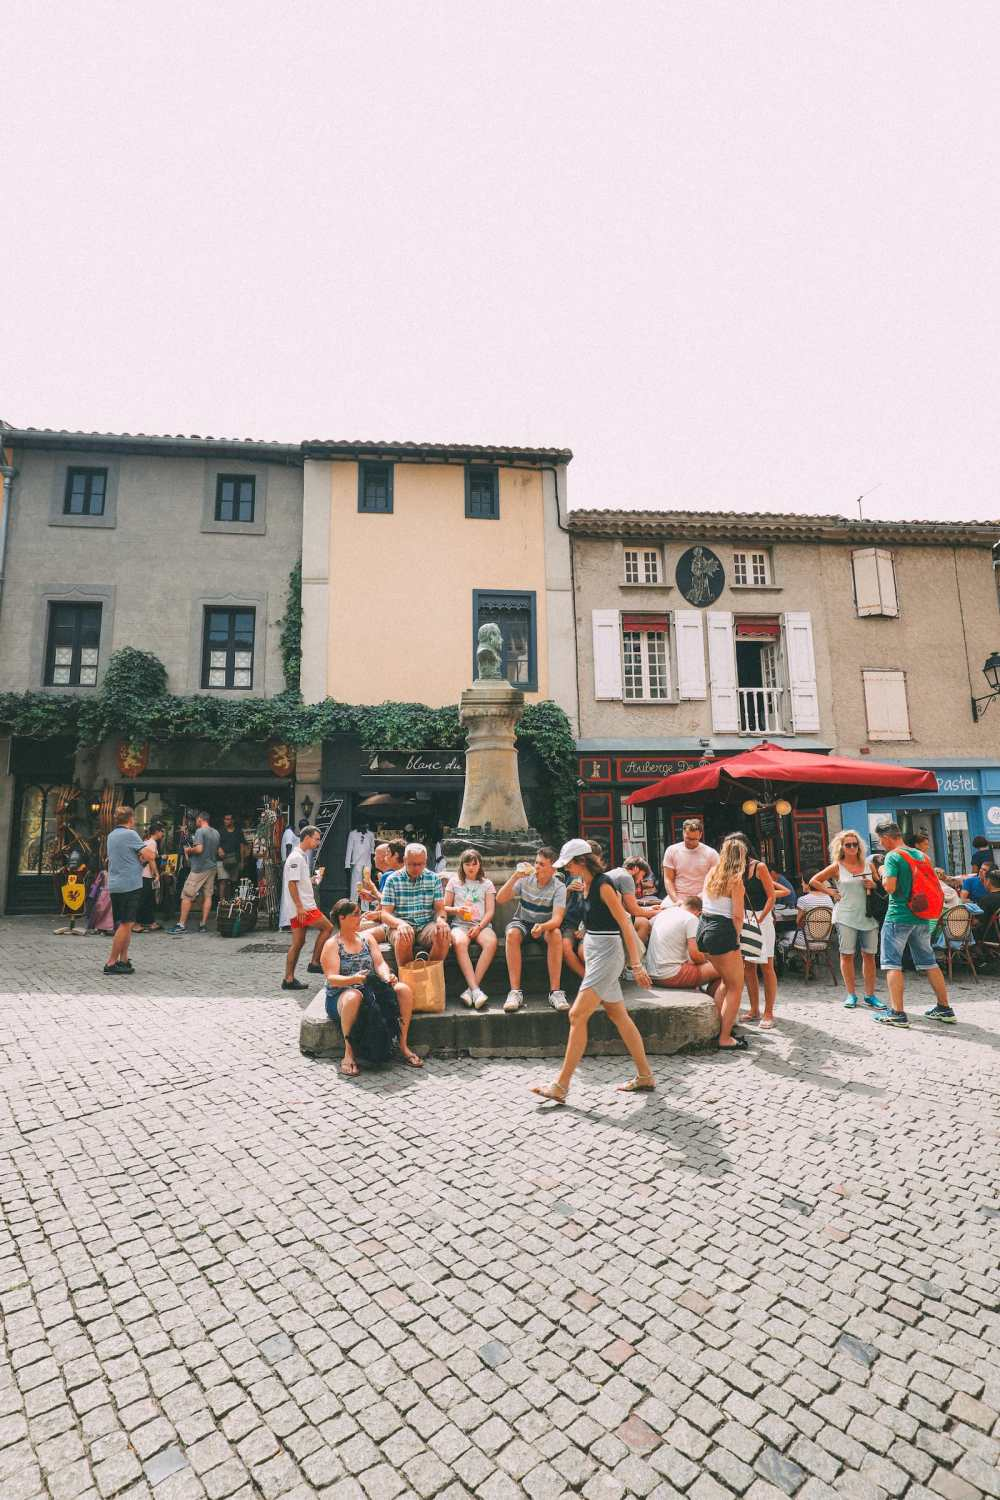 Photos And Postcards From Carcassonne In The South Of France... (7)